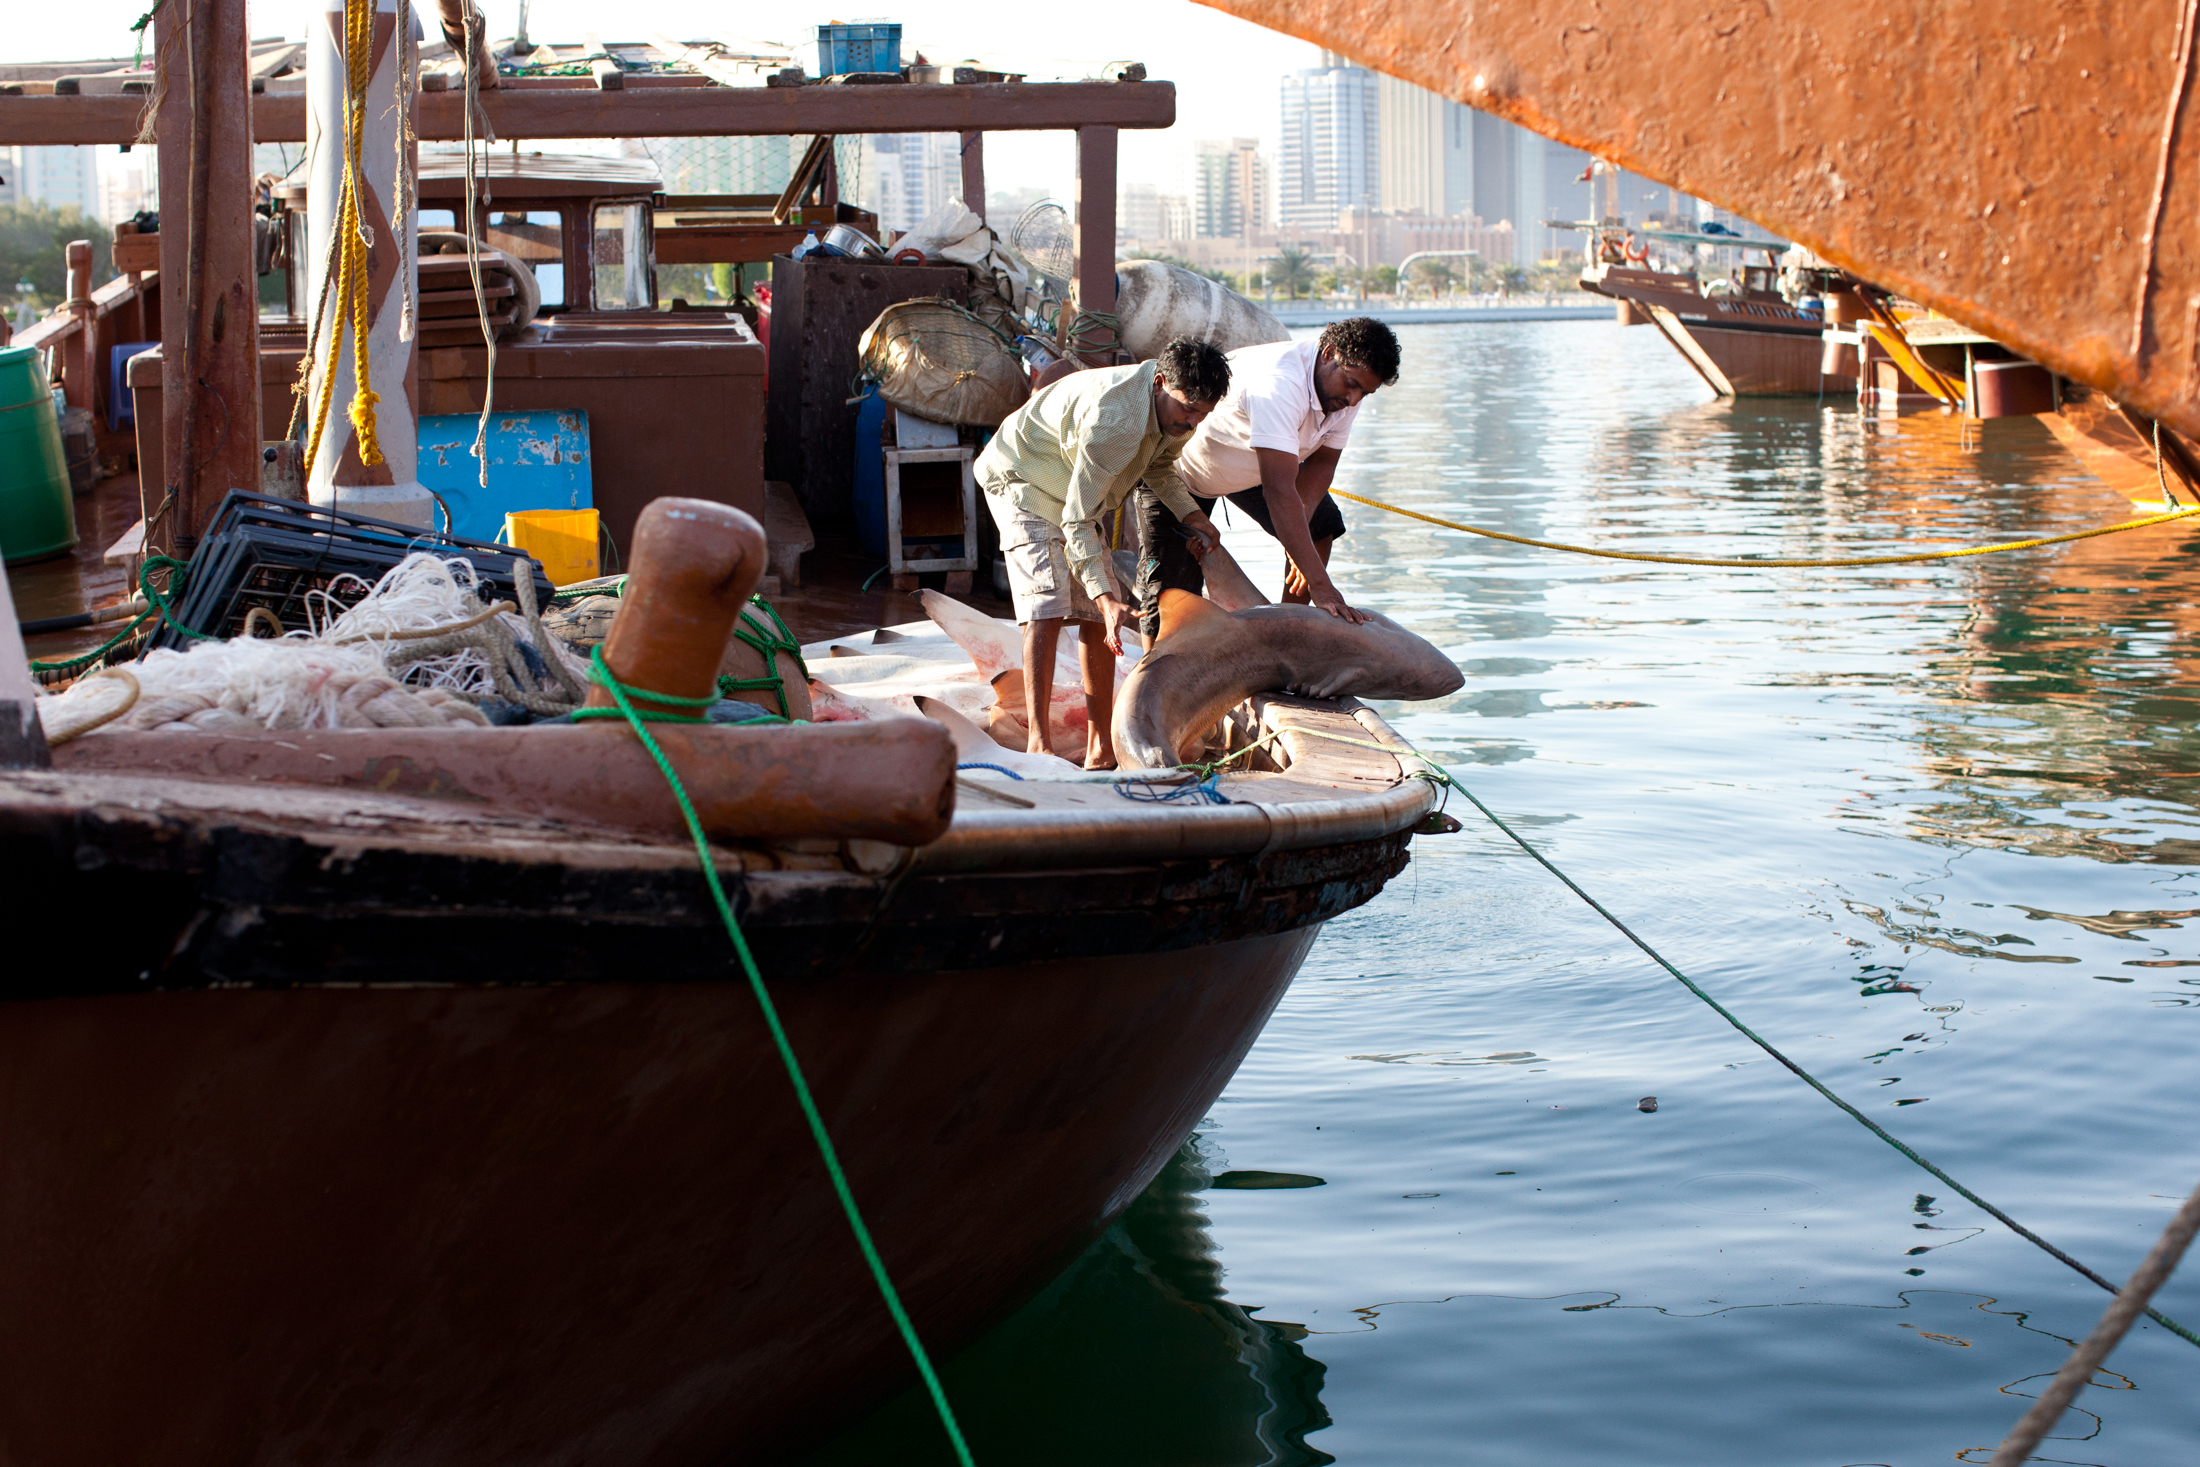 shark-fisherman-abu-dhabi-002.jpg